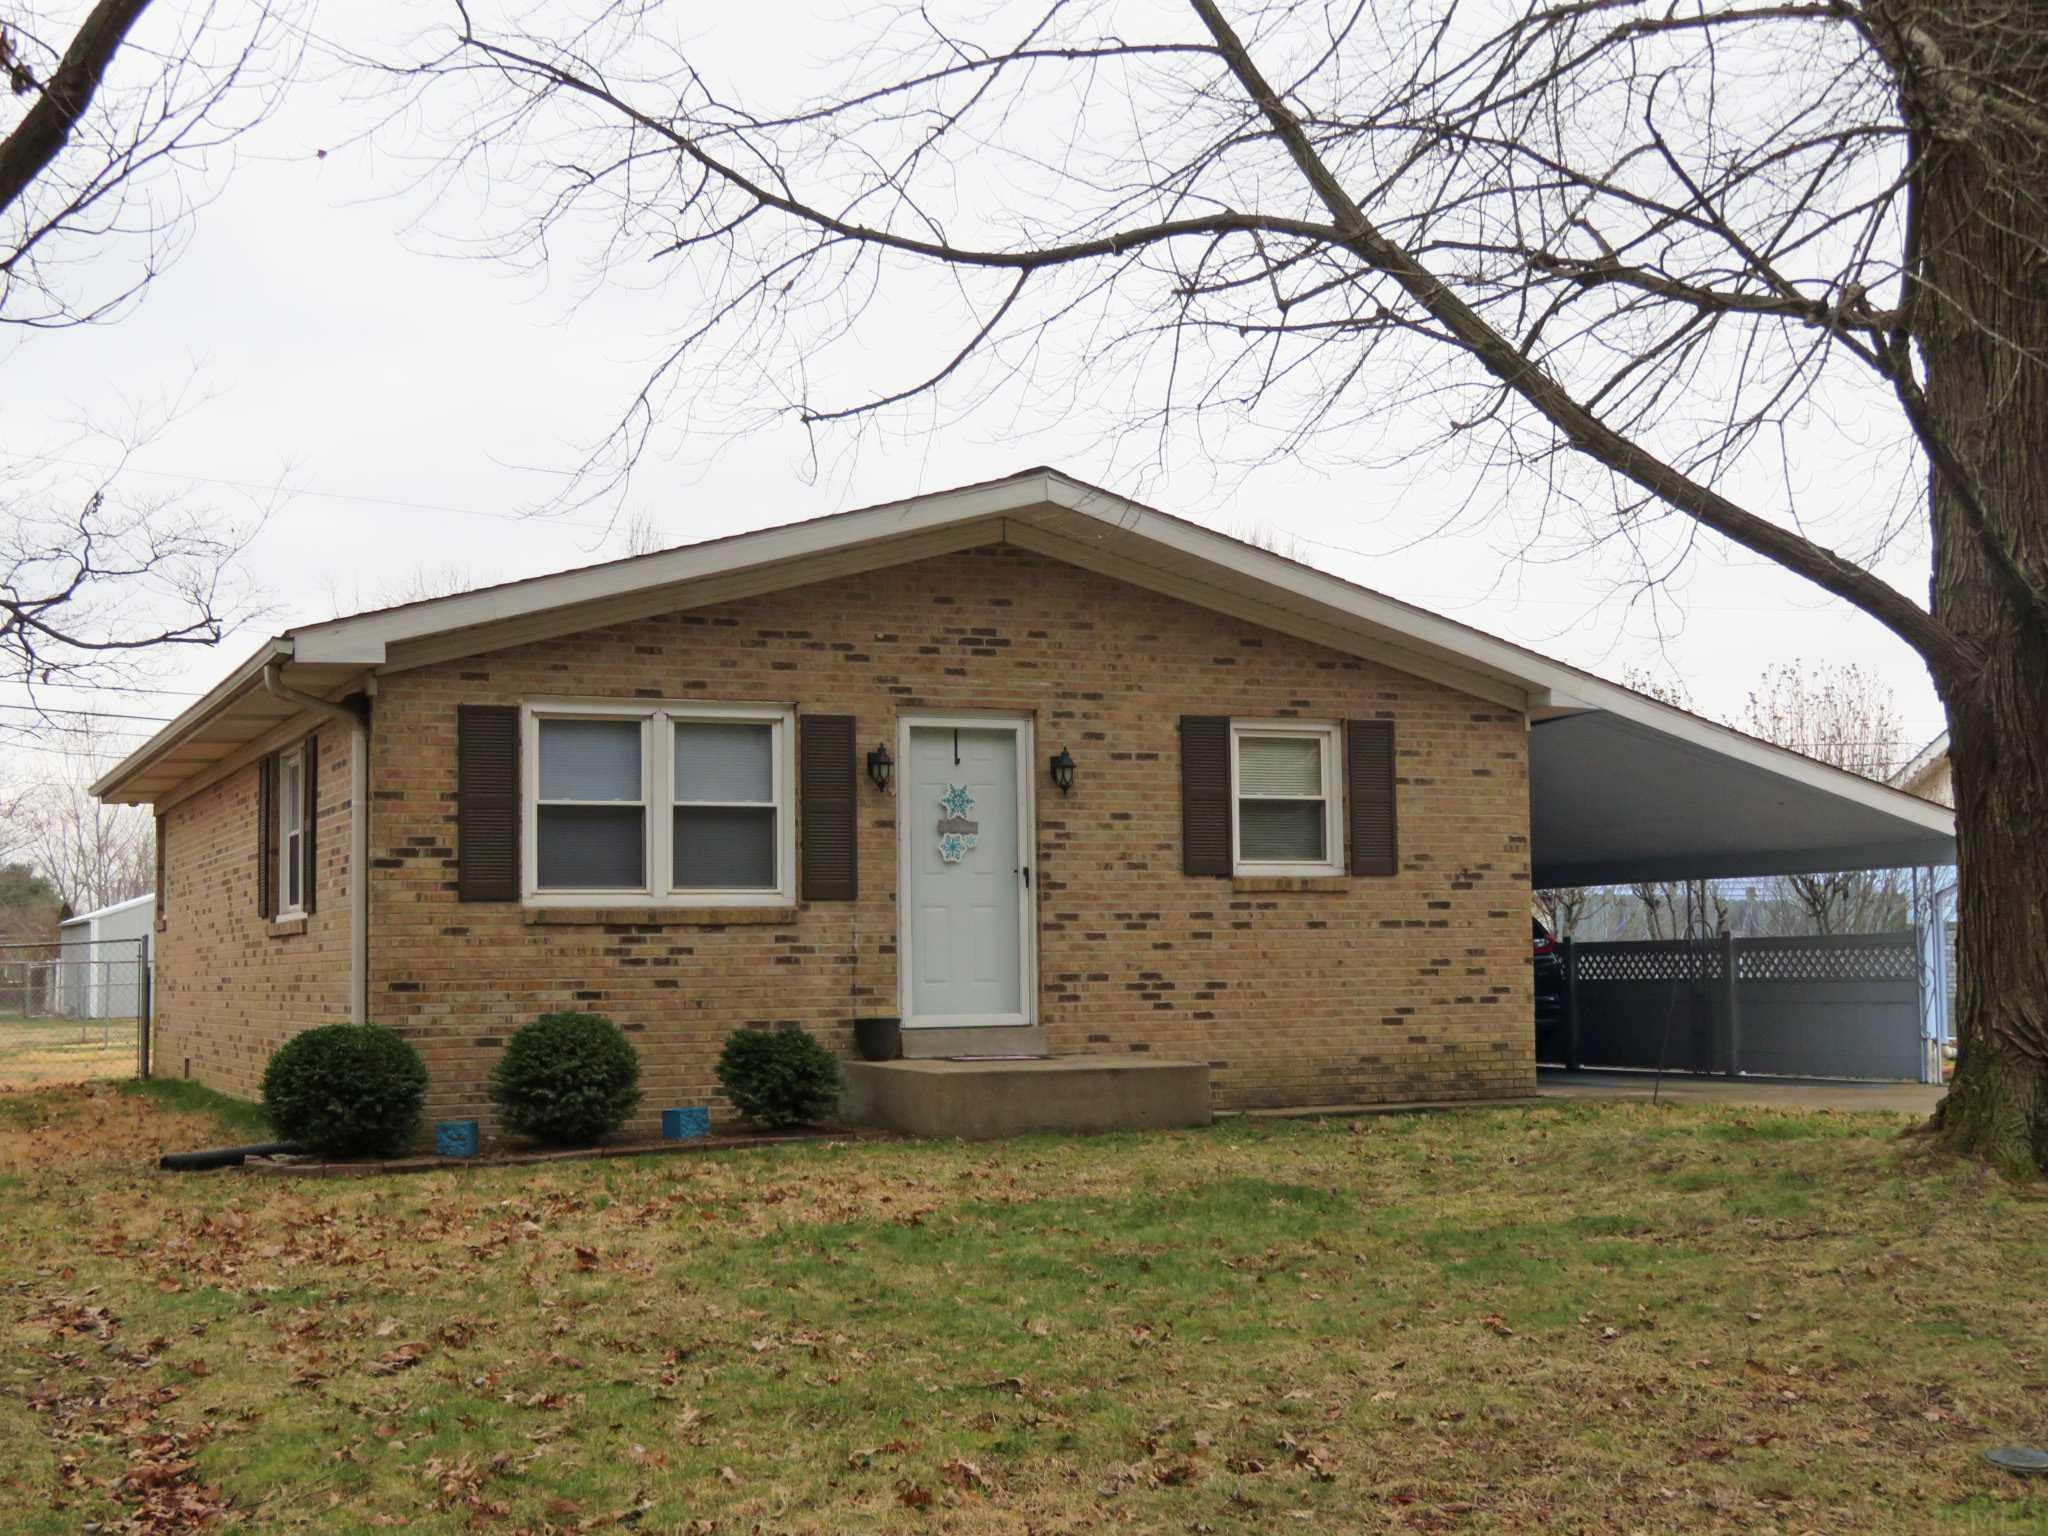 Full Brick Ranch in Newburgh on a 71 x 139 fenced lot!  Perfect starter Home Features an Updated (2020) Spacious Kitchen. Includes All Appliances and there is a Maytag Washer and Dryer.  Two Bedrooms include a 16 x 11 Master with ceiling fan, his and her closets and there is a two compartment Updated, Full Bath with double vanity and tub/shower combo. Some Replacement windows, Lots of Natural Light, New Ceiling Fans, Newer Electric Heat Pump (3 yrs ago) ,  Roof (4 yrs old) Crawl Space, fenced rear yard, 20 x 12 Concrete Patio, 8 x 10 Yard Barn (2006)  and a 14 x 41 Two Car Carport w/storage. Convenient to to I-164 and Evansville